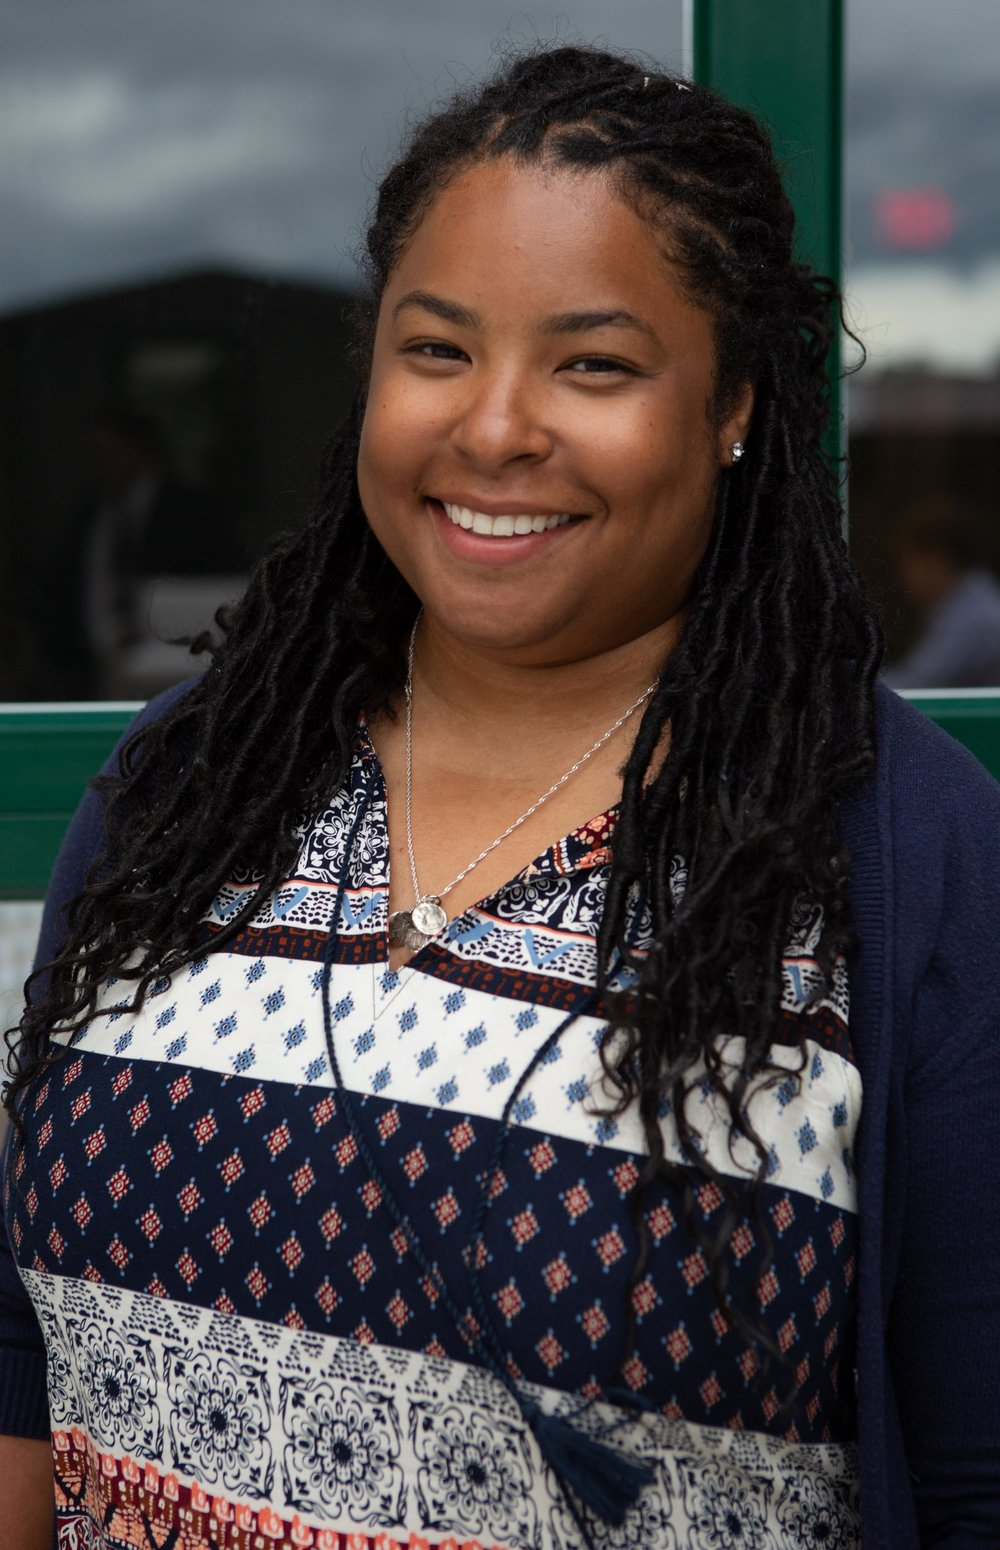 Alisha Murdock - FACILITATORAlisha graduated from The George Washington University in 2013. Upon graduation, she pursued her passion for equity as a Teach For America corps member in Eastern North Carolina. In 2015, she cofounded #SaySomething, a nonprofit organization geared towards the empowerment of young women of color in rural communities. Bolstered by that experience and a continued fervor for diversity, equity, and inclusion, Alisha joined the oneTILT family in 2017 as a facilitator. She continues to serve the education community as a Director of Operations for the Cesar Chavez Public Charter School Network.